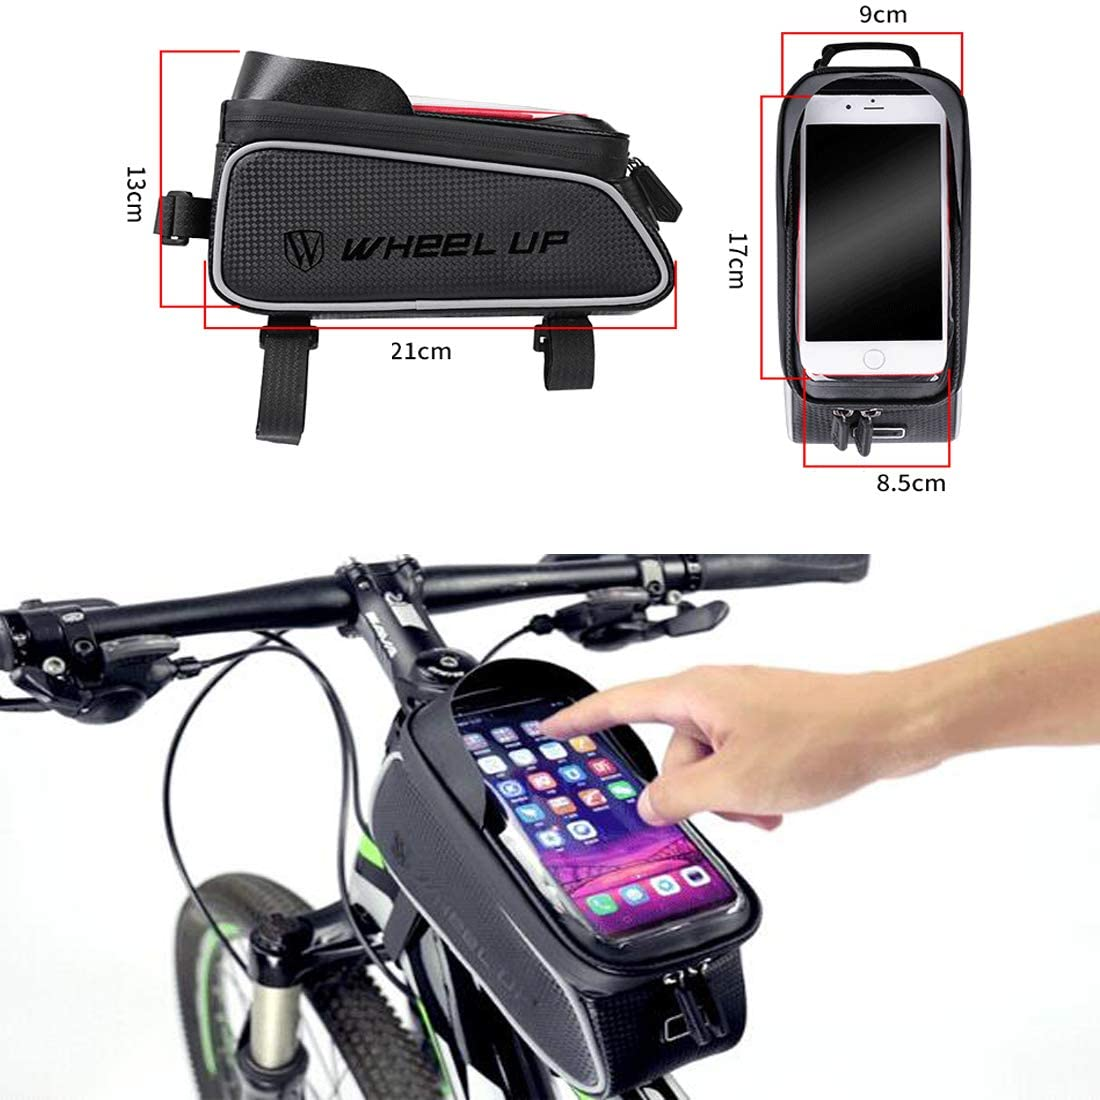 UK Waterproof Mountain Bike Frame Front Bag Pannier Bicycle Mobile Phone Holder